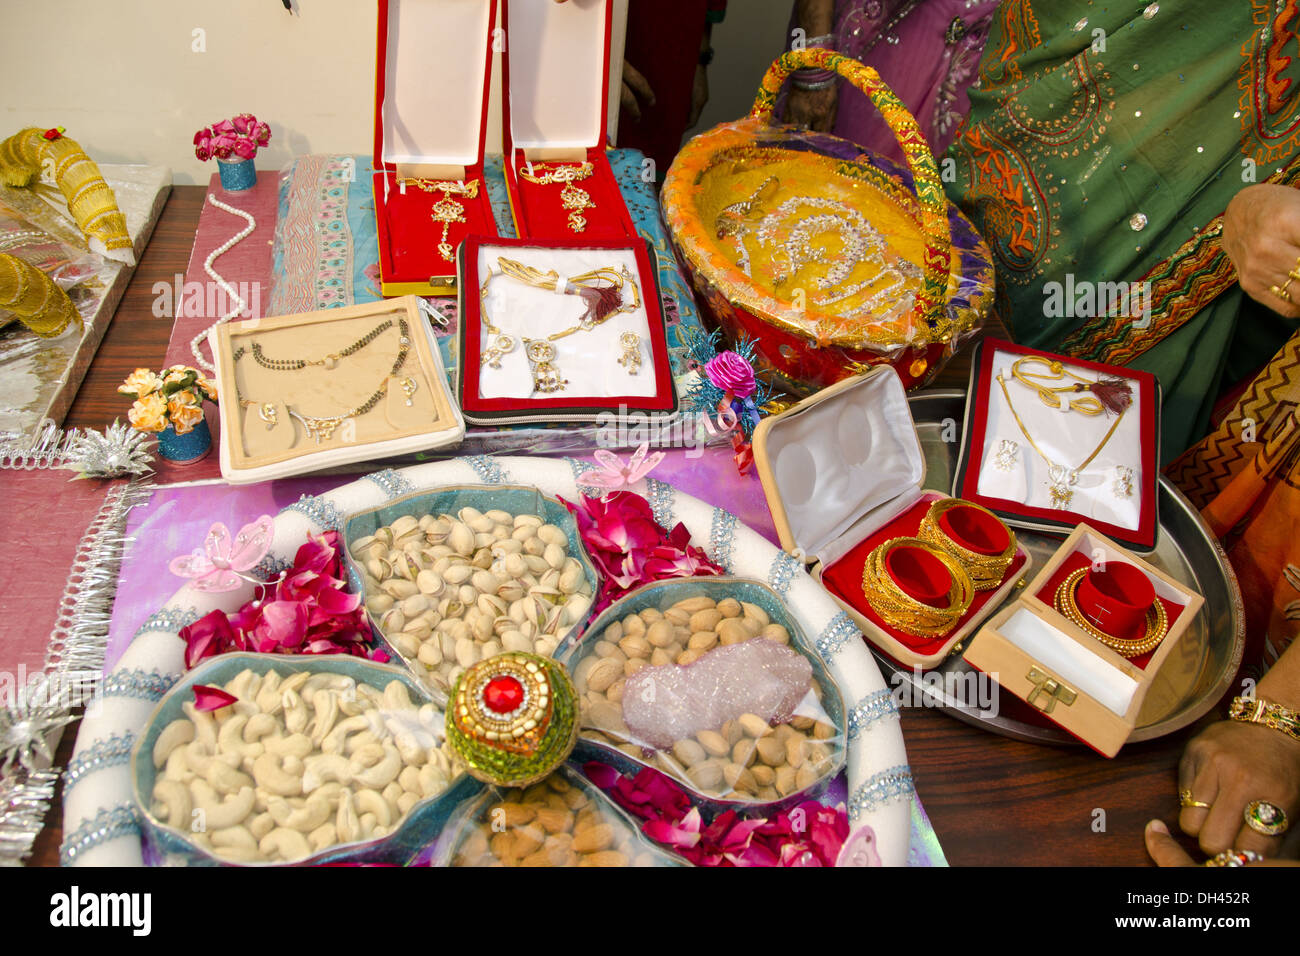 Indian Wedding Gift Articles : Dowry gifts jewellery dry fruits decorative packing for Indian Stock ...